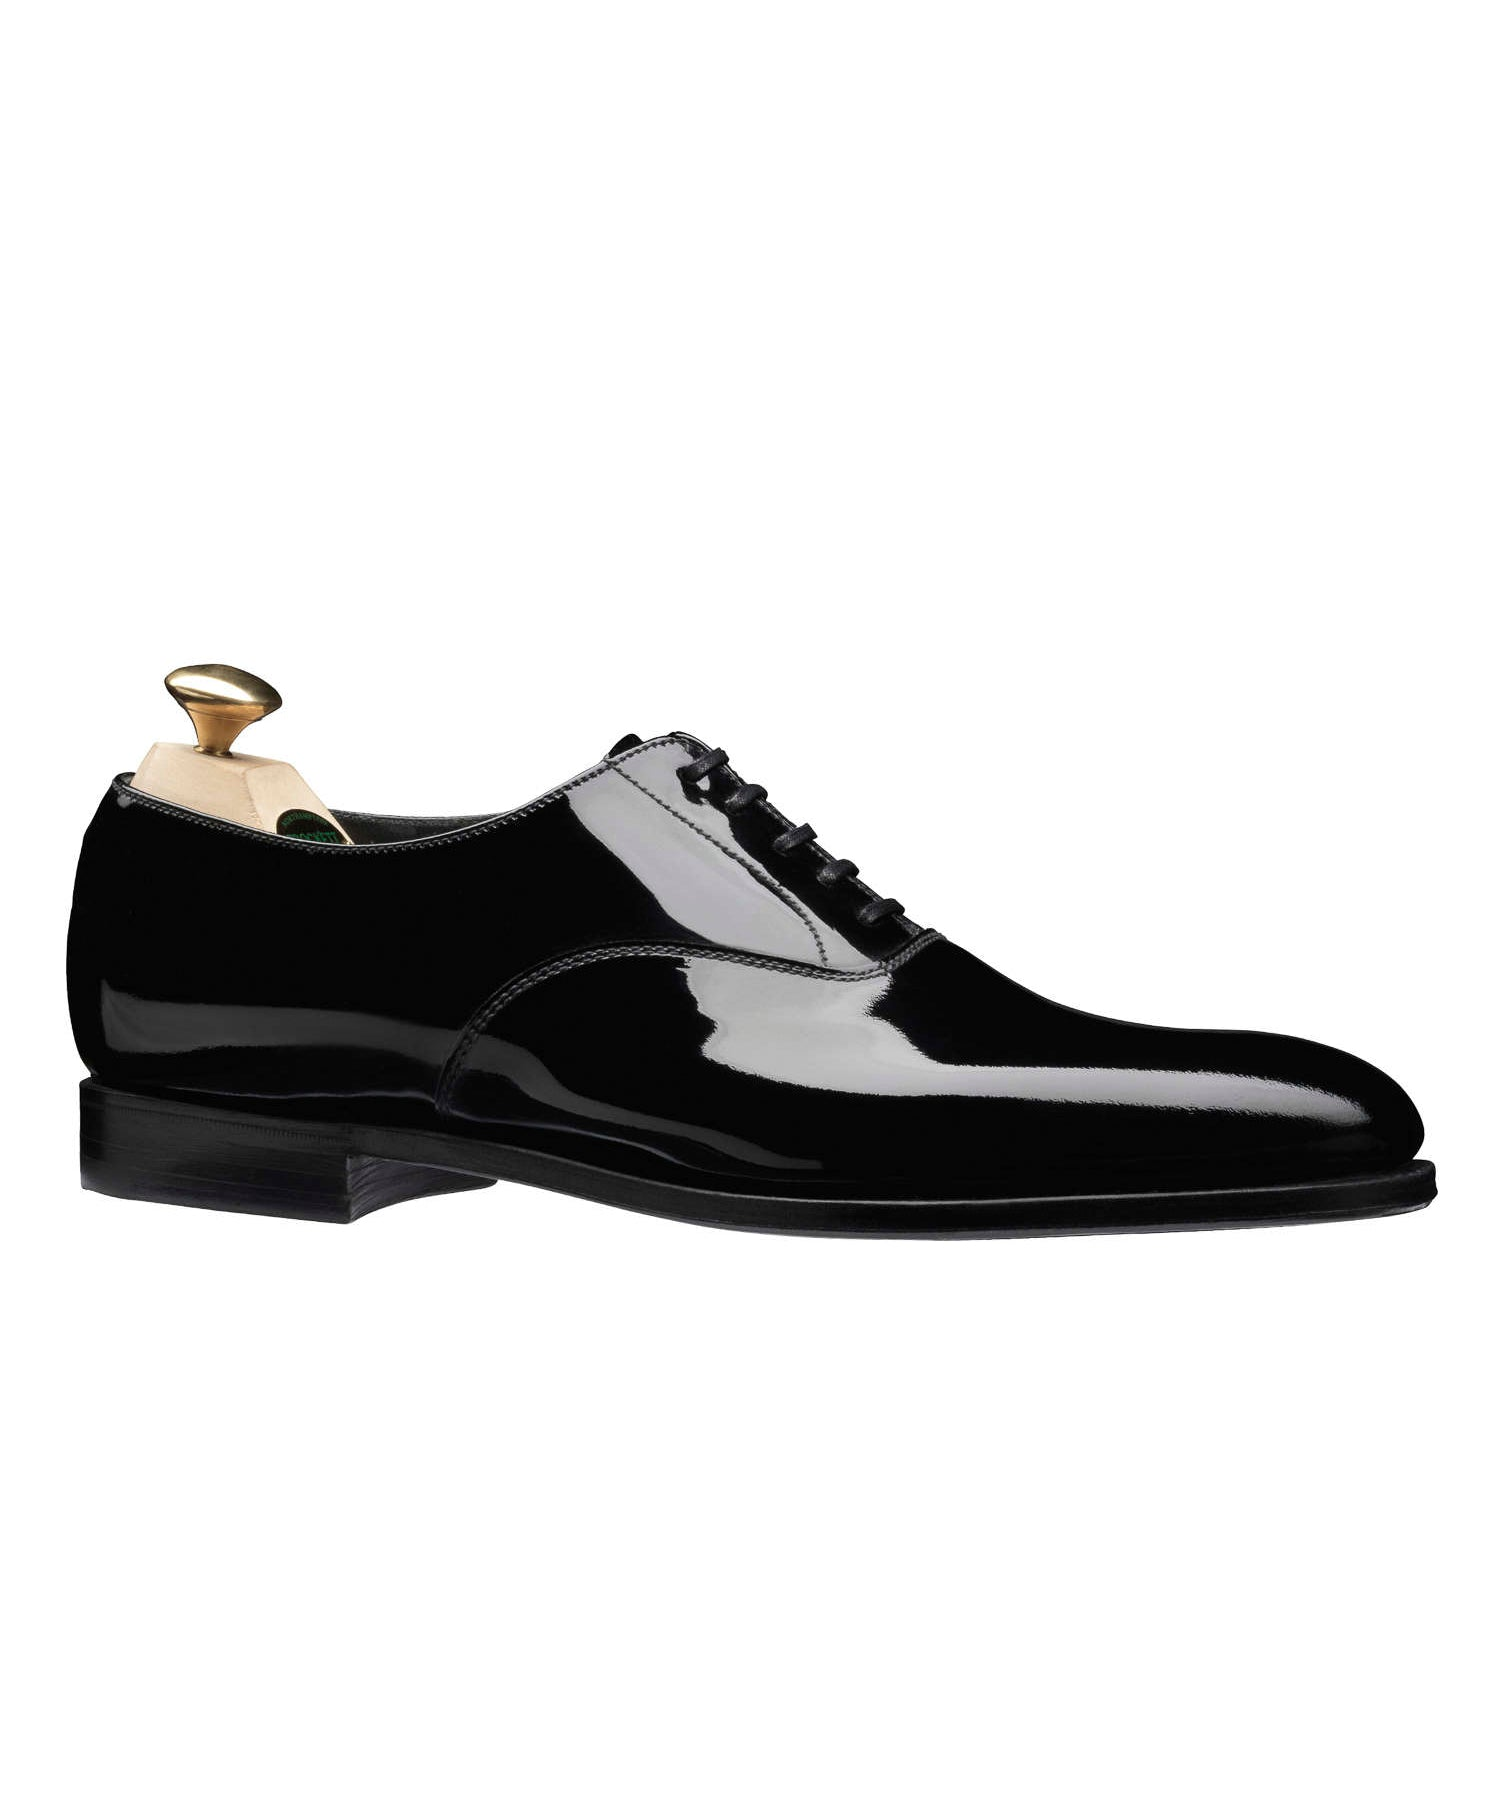 Crockett and Jones Overton Black Tie Shoe in Black